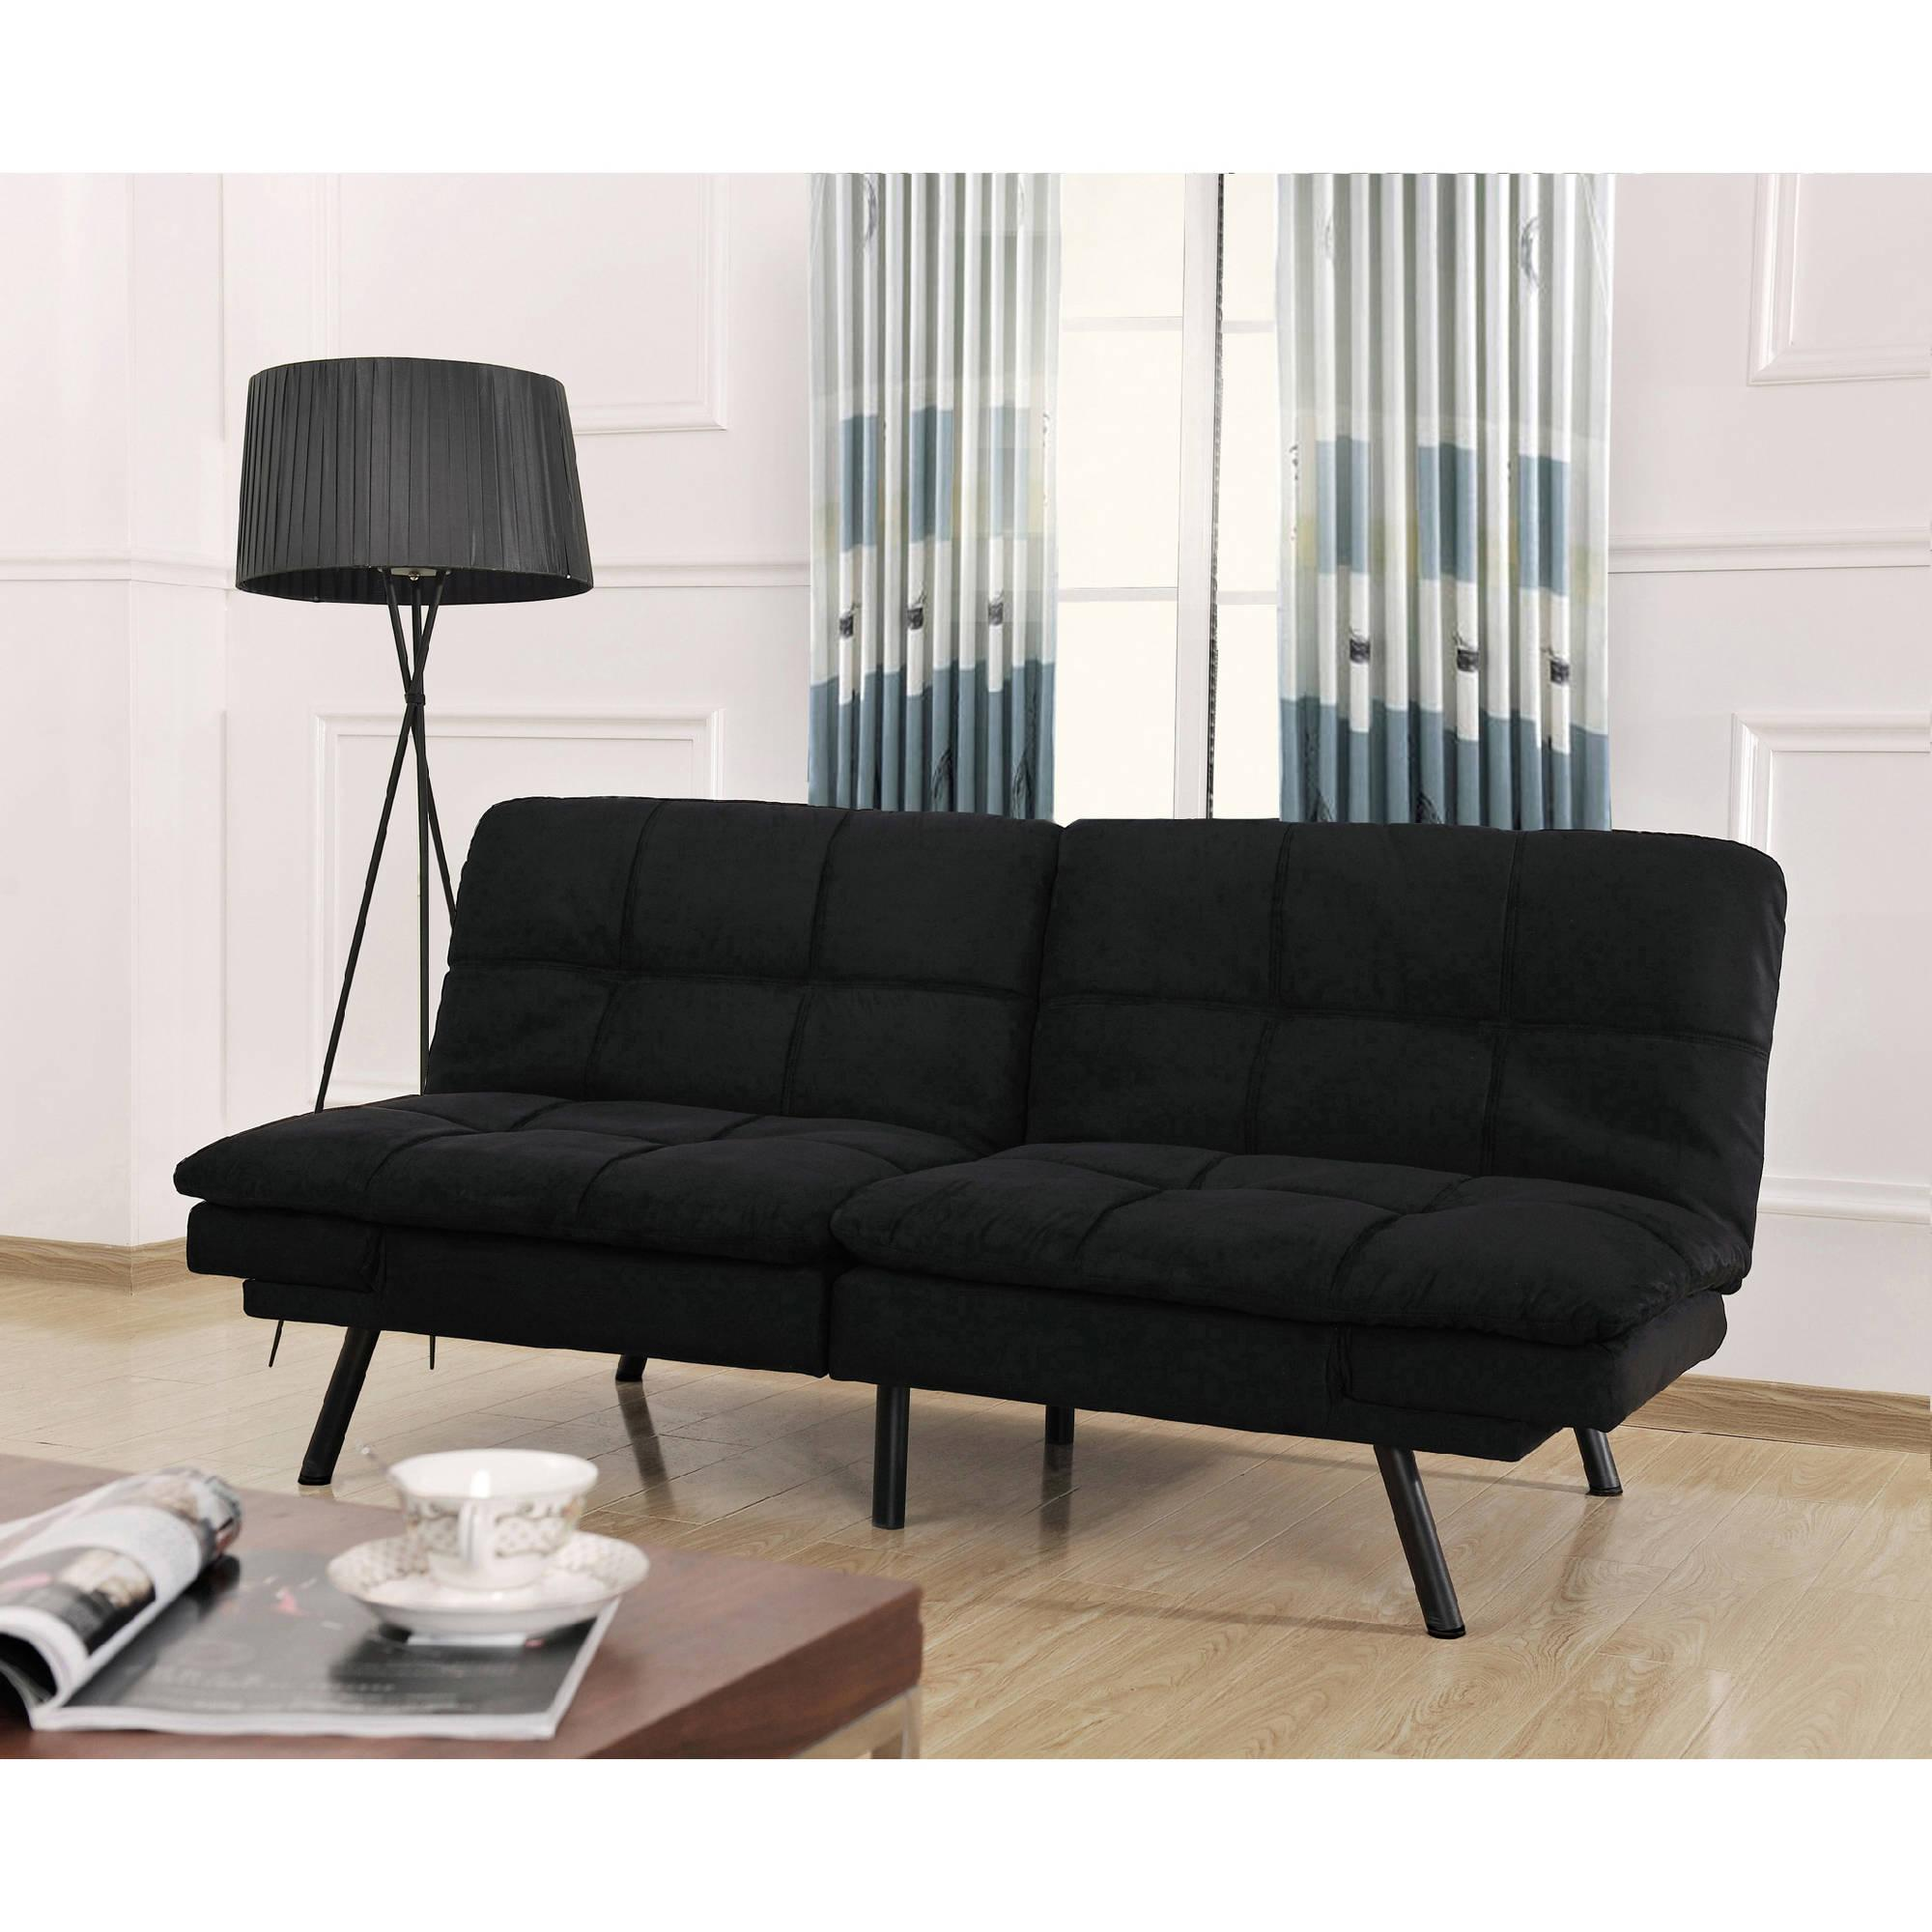 Futons for Sale at Walmart | Metal Arm Futon Walmart | Walmart Futon